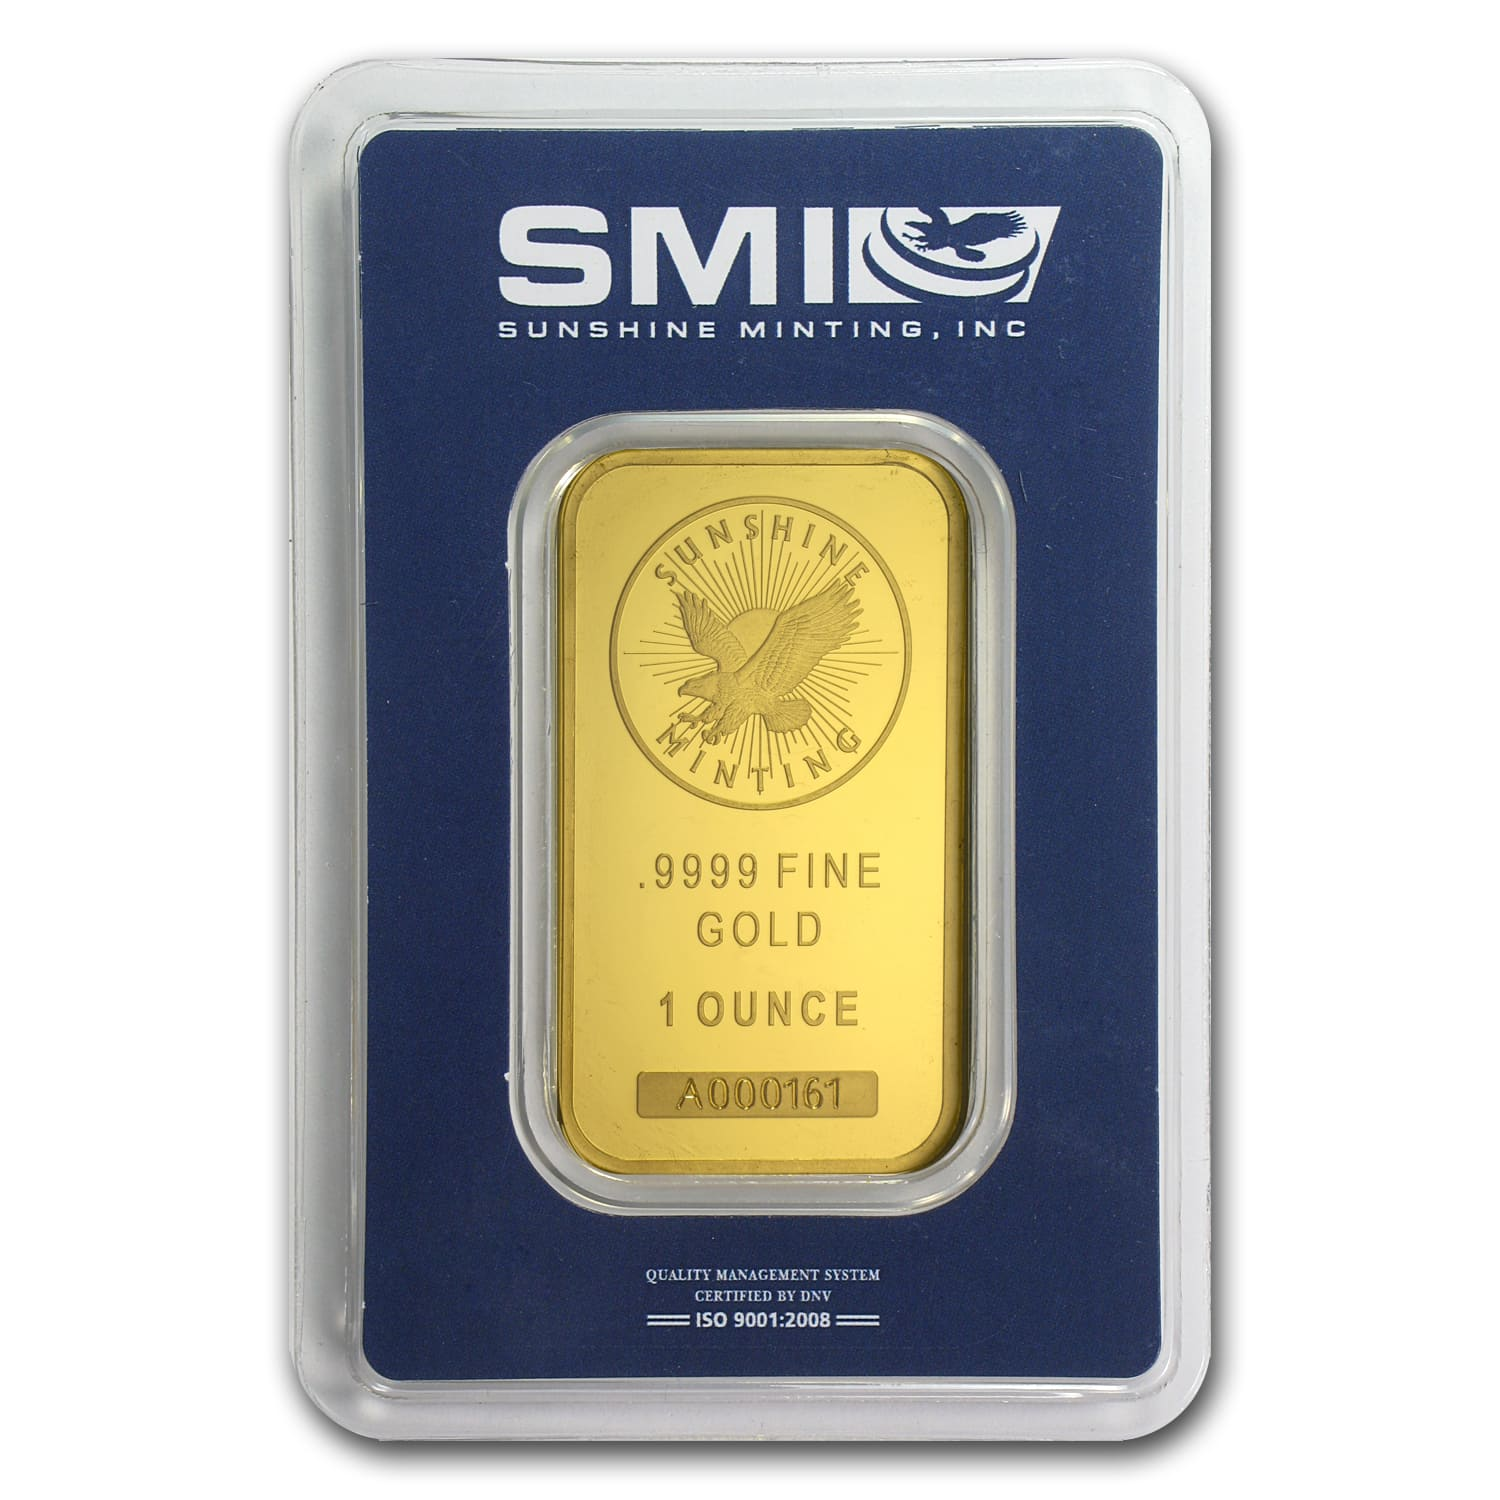 1 oz Gold Bar - Sunshine Minting New Design (In TEP Packaging)